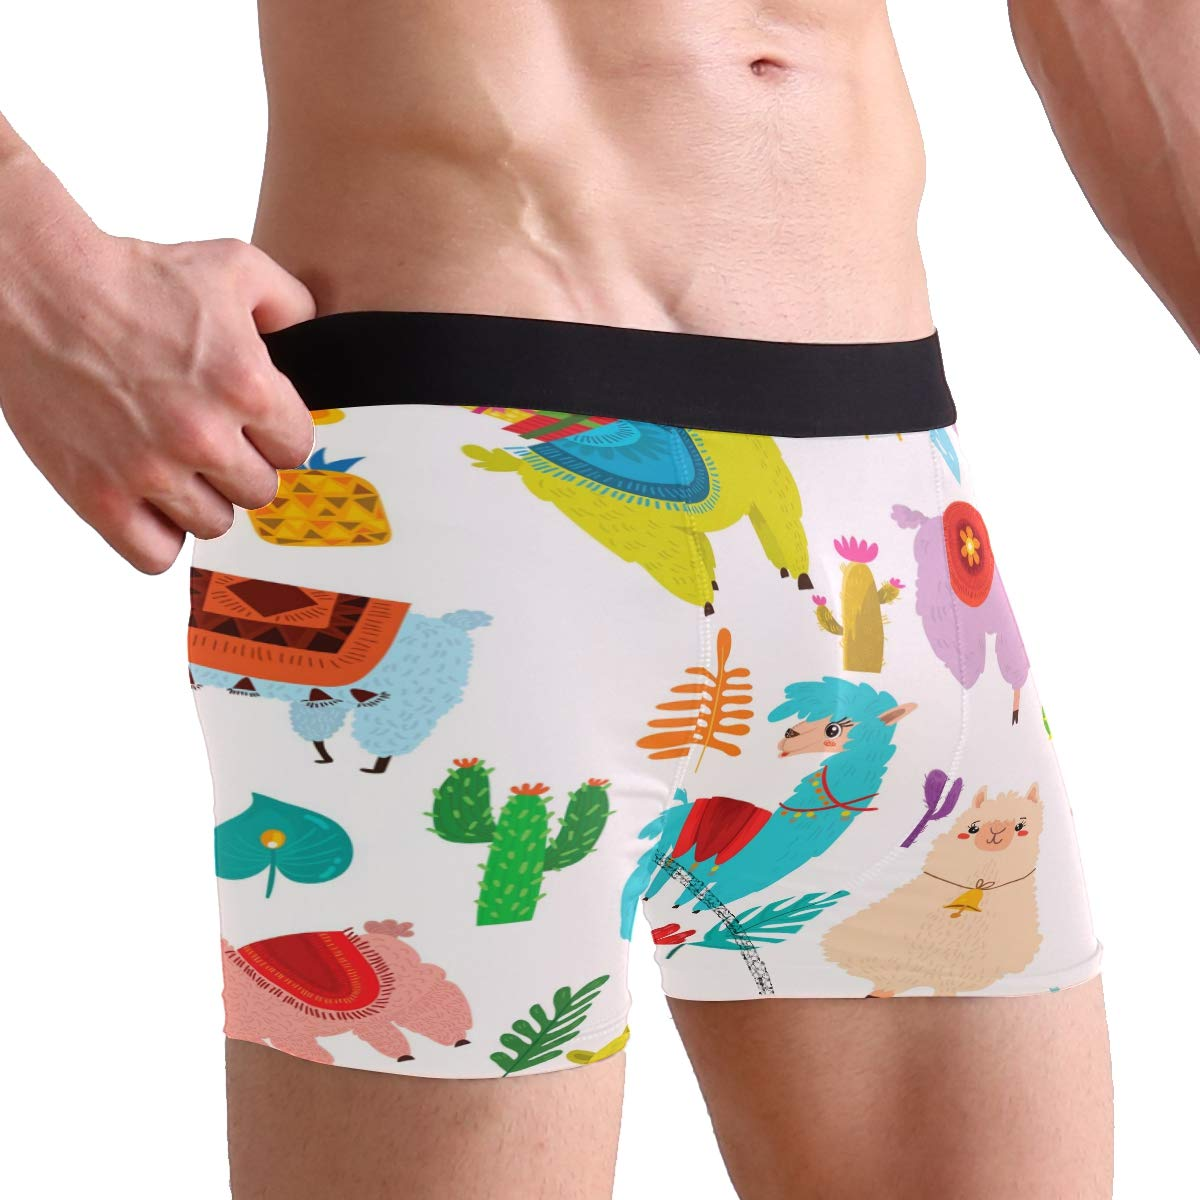 SUABO Mens 2-Pack Boxer Briefs Polyester Underwear Trunk Underwear with Alpaca Painting Design